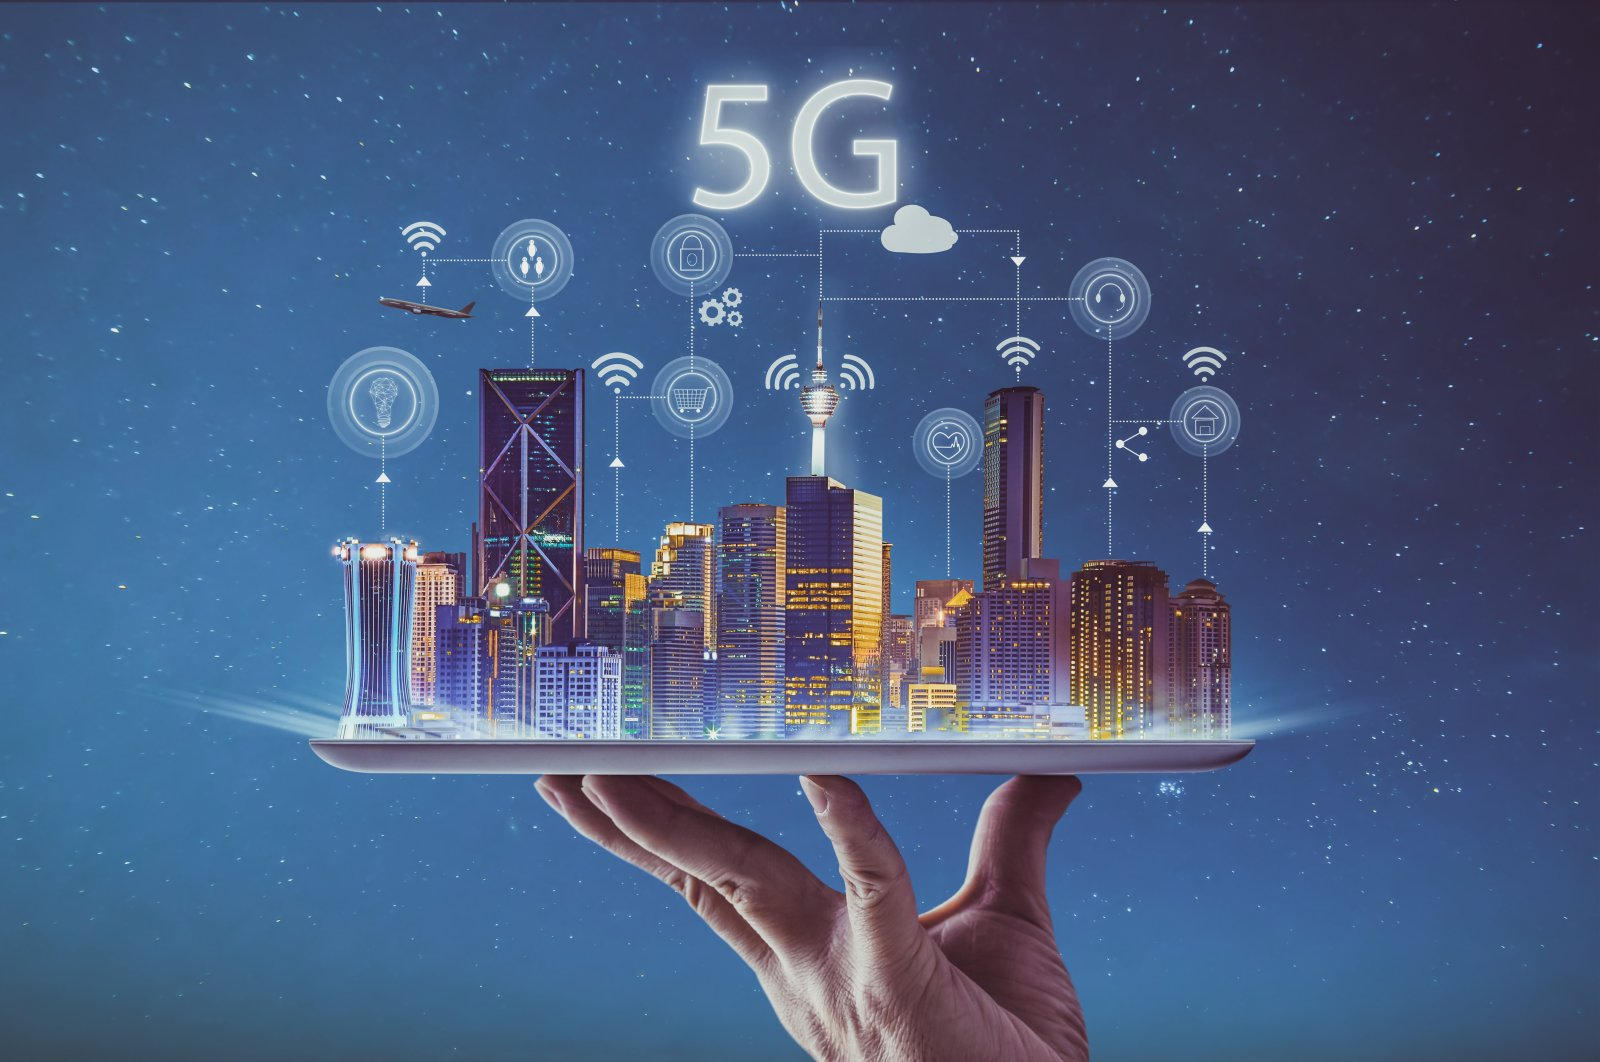 5G-enabled industries are said to have the potential to add $8 trillion to global gross domestic product (GDP) by 2030. (iStock Photo)